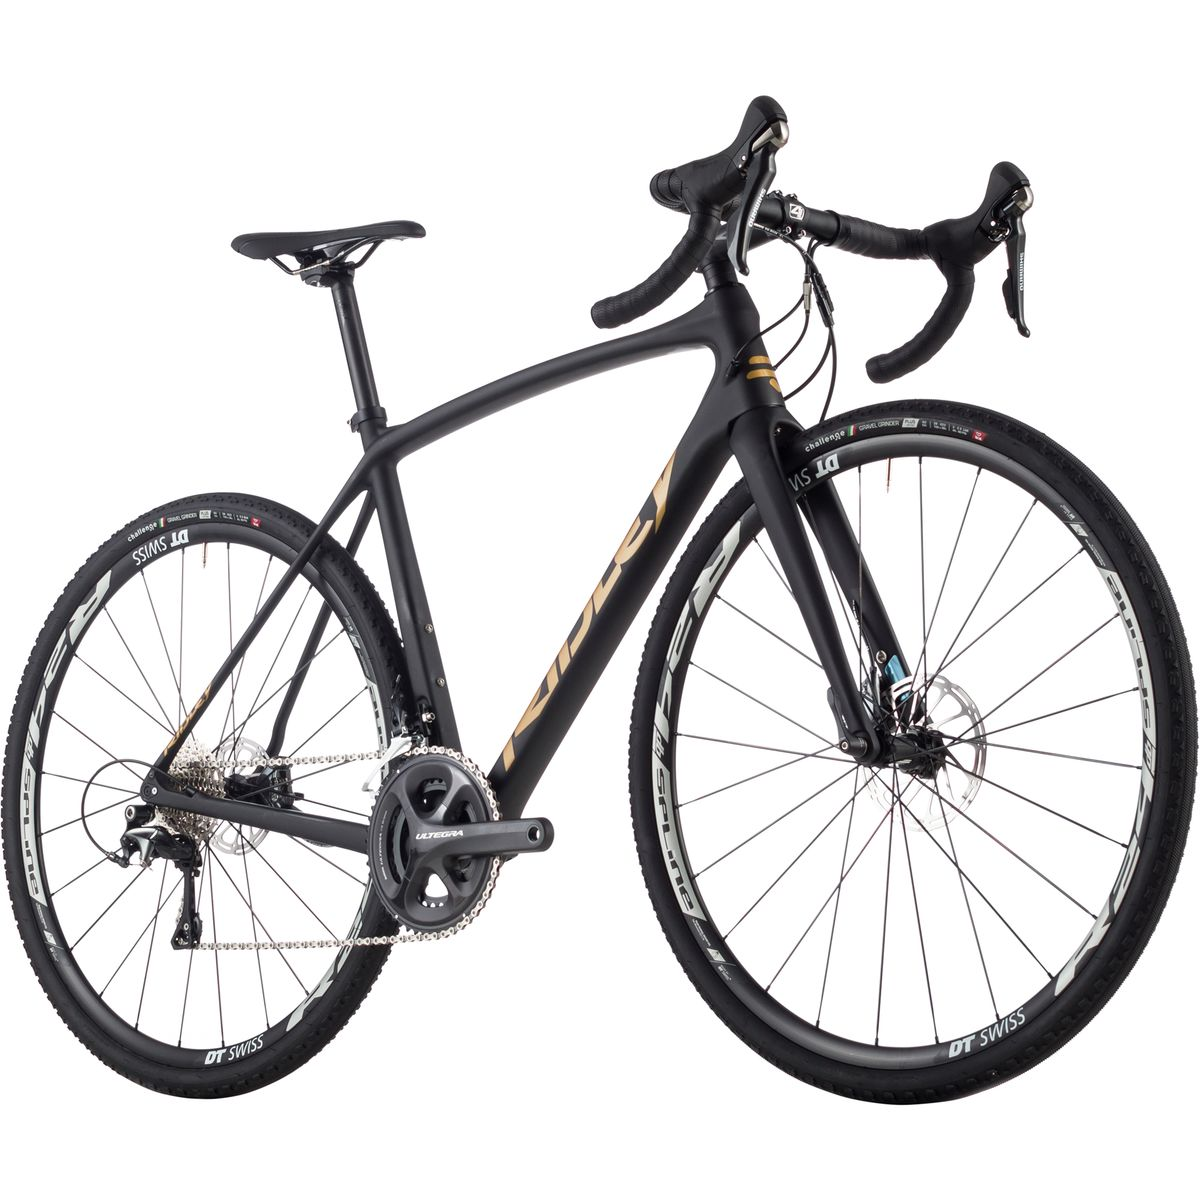 Ridley X Trail Ultegra Complete Bike 2017 Competitive Cyclist